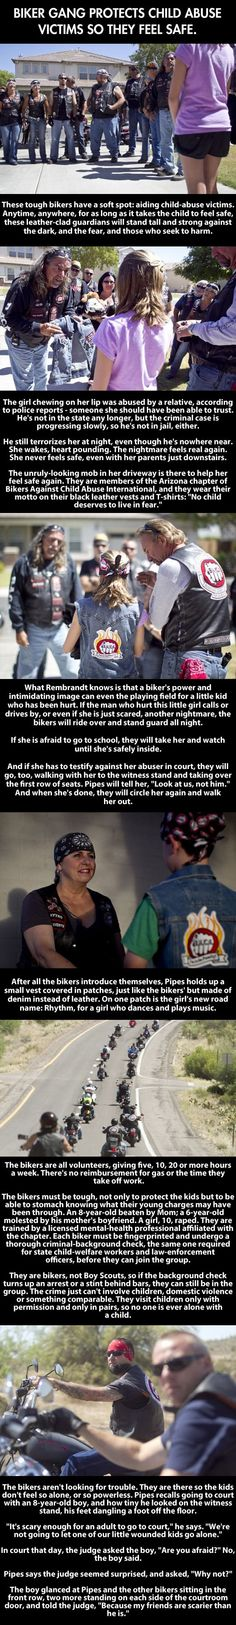 When Rough Men Approached A Little Girl, I Was Scared. Then I Realized What They Were REALLY Doing.